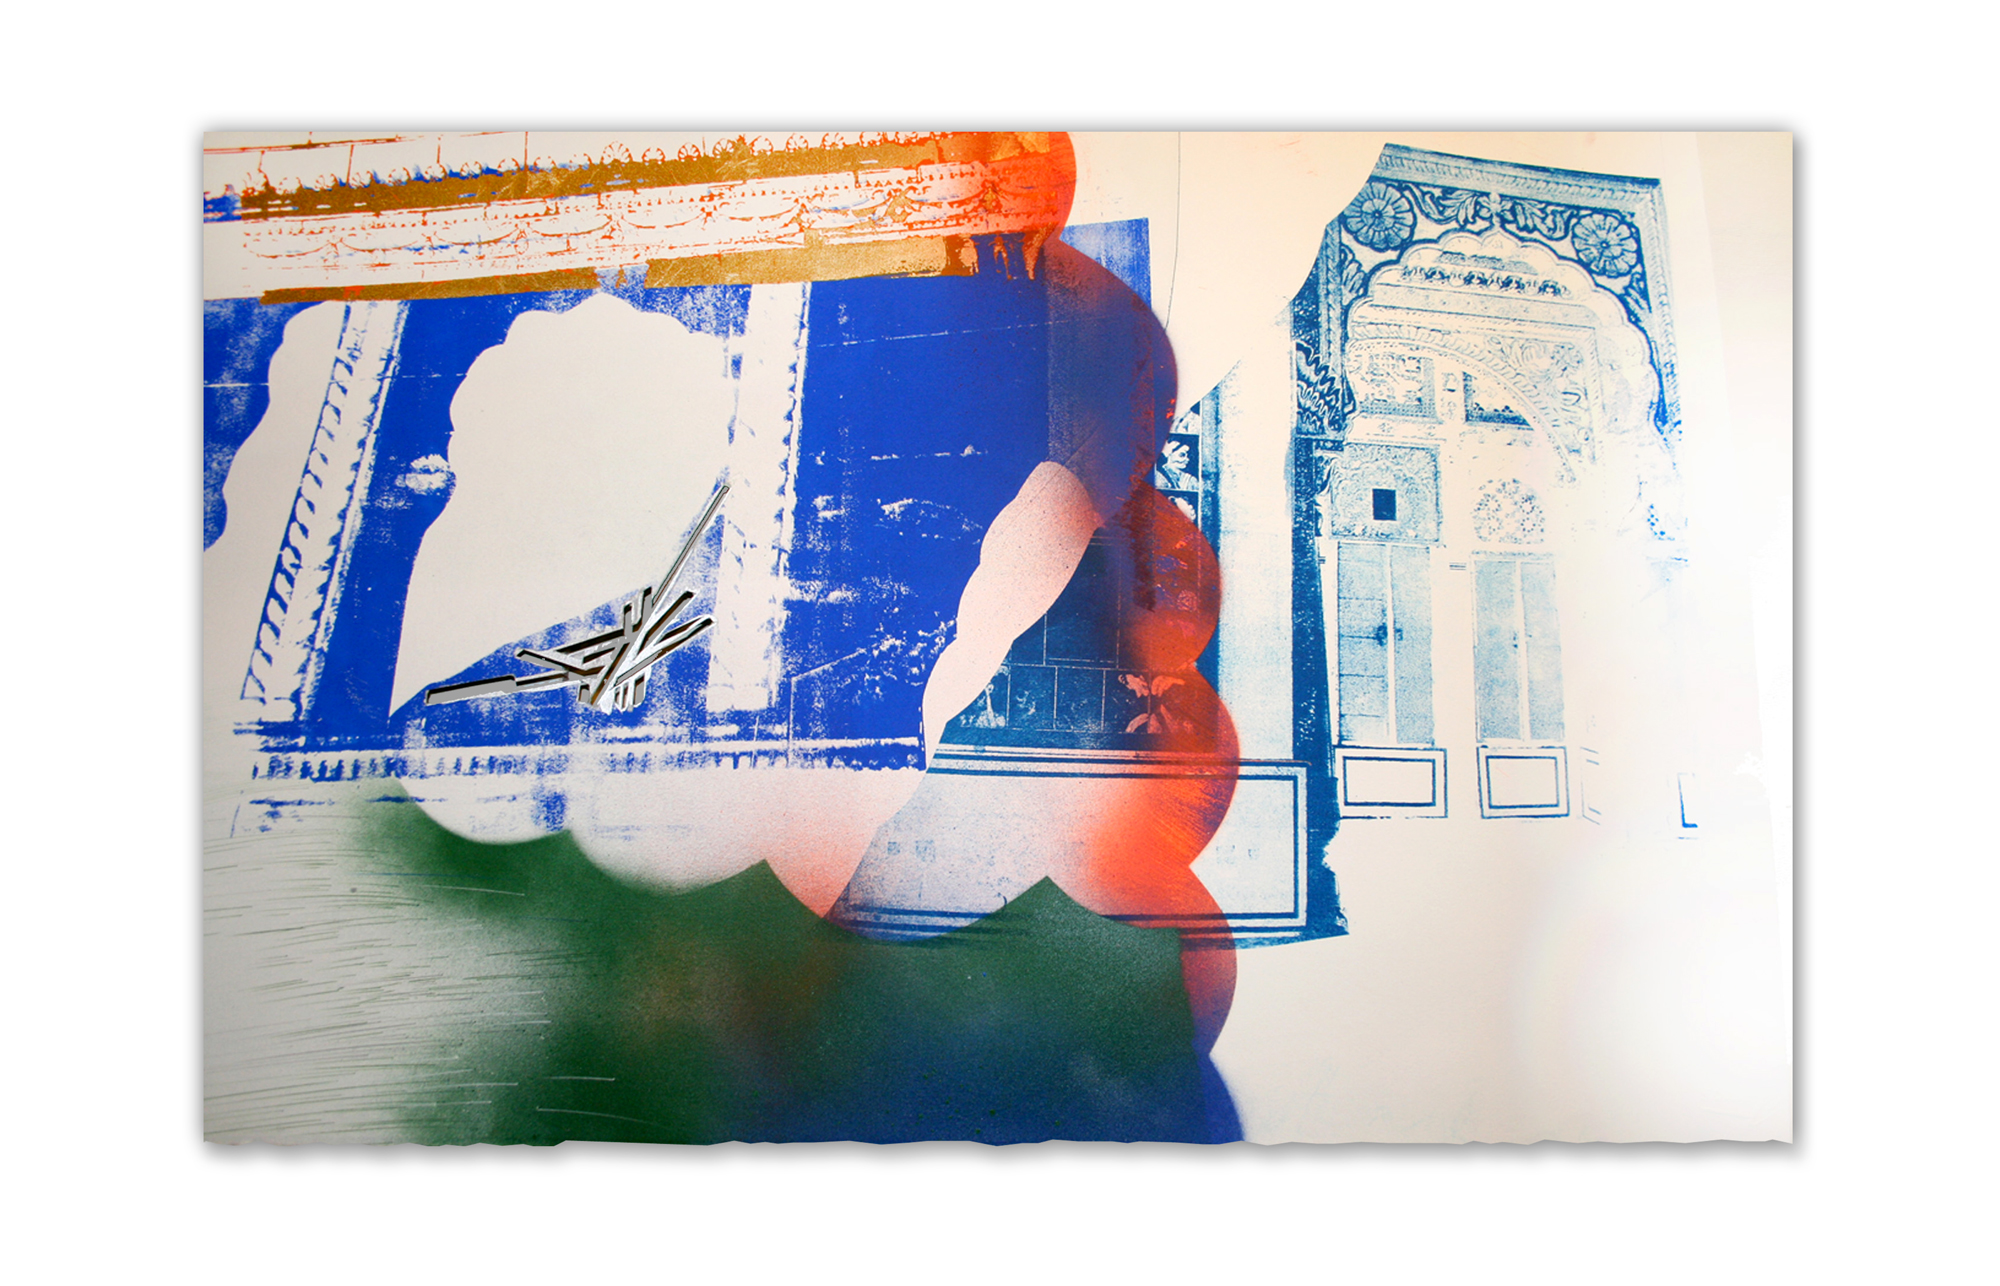 Door to door, it's 12–20 minutes from home to Zygote Press, if you take Superior Avenue; The new Lancer looks like a Mughal Palace #2,  2015.  Photo Litho, Screenprint and Painting on paper.